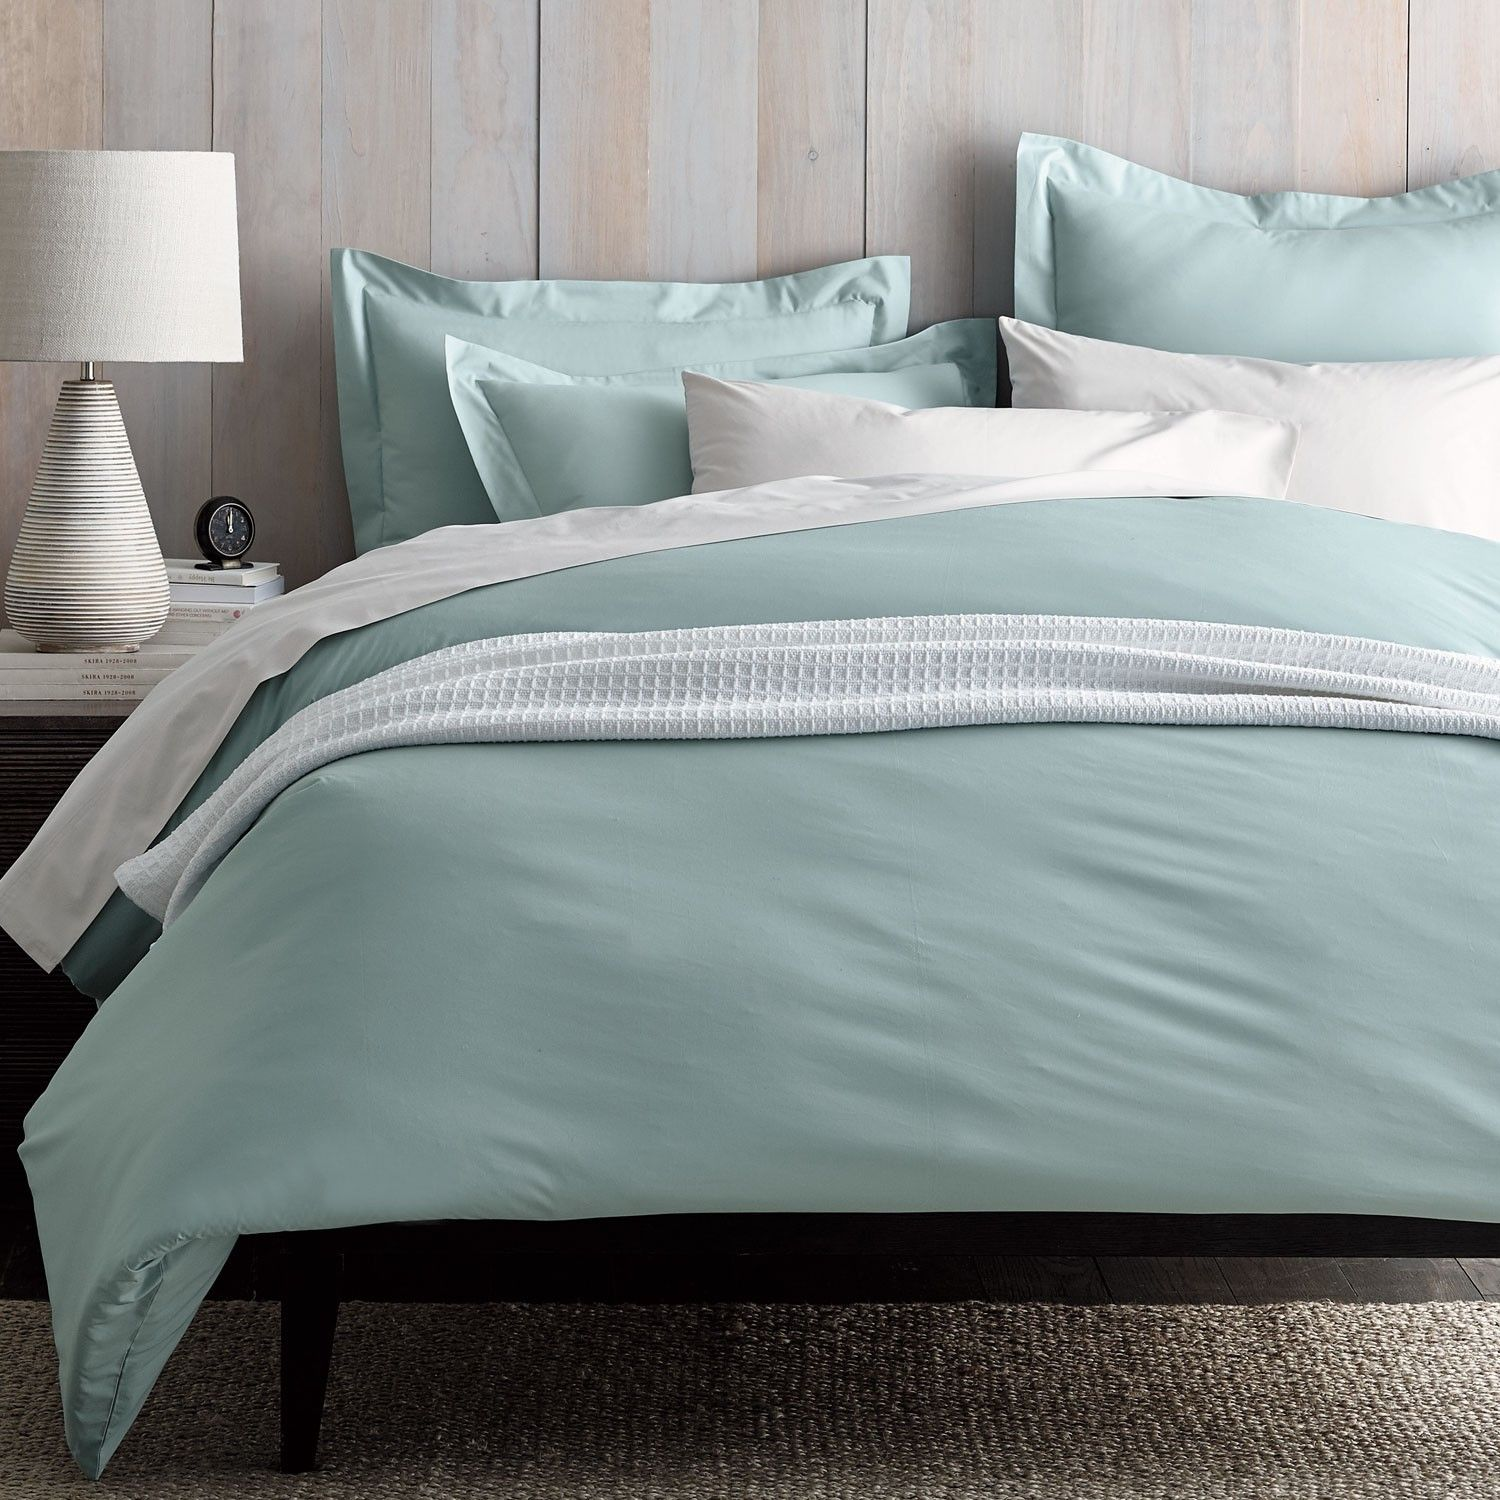 Organic Sheets Bedding Set In A Fine Weave Of 300 Thread Count Cotton Percale Cool Crisp And Sublimely Smooth To The Touch